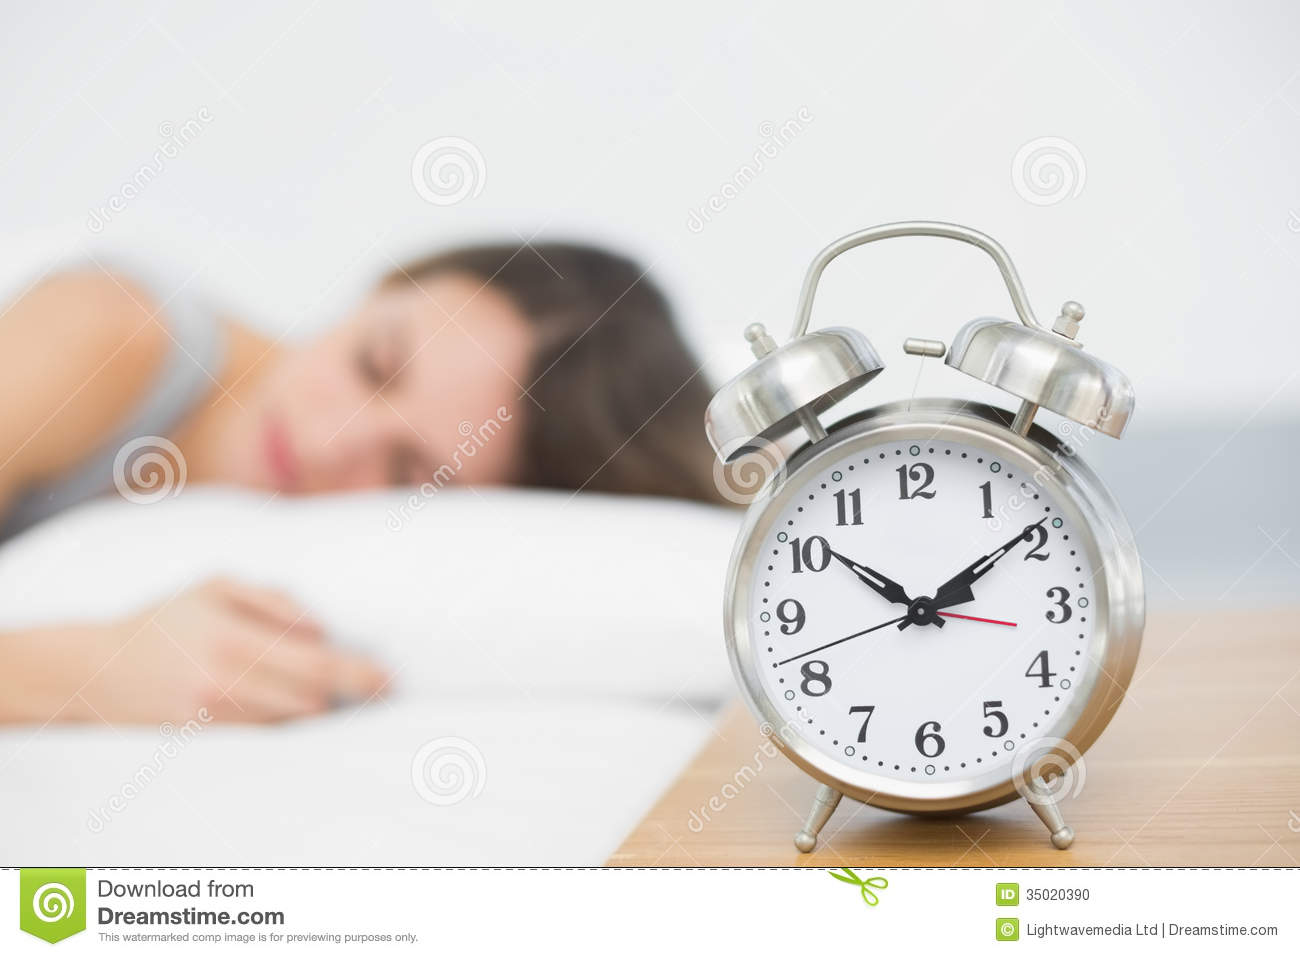 Good Alarm Bedside - retro-alarm-clock-standing-bedside-table-sleeping-woman-background-35020390  Collection_921889.jpg